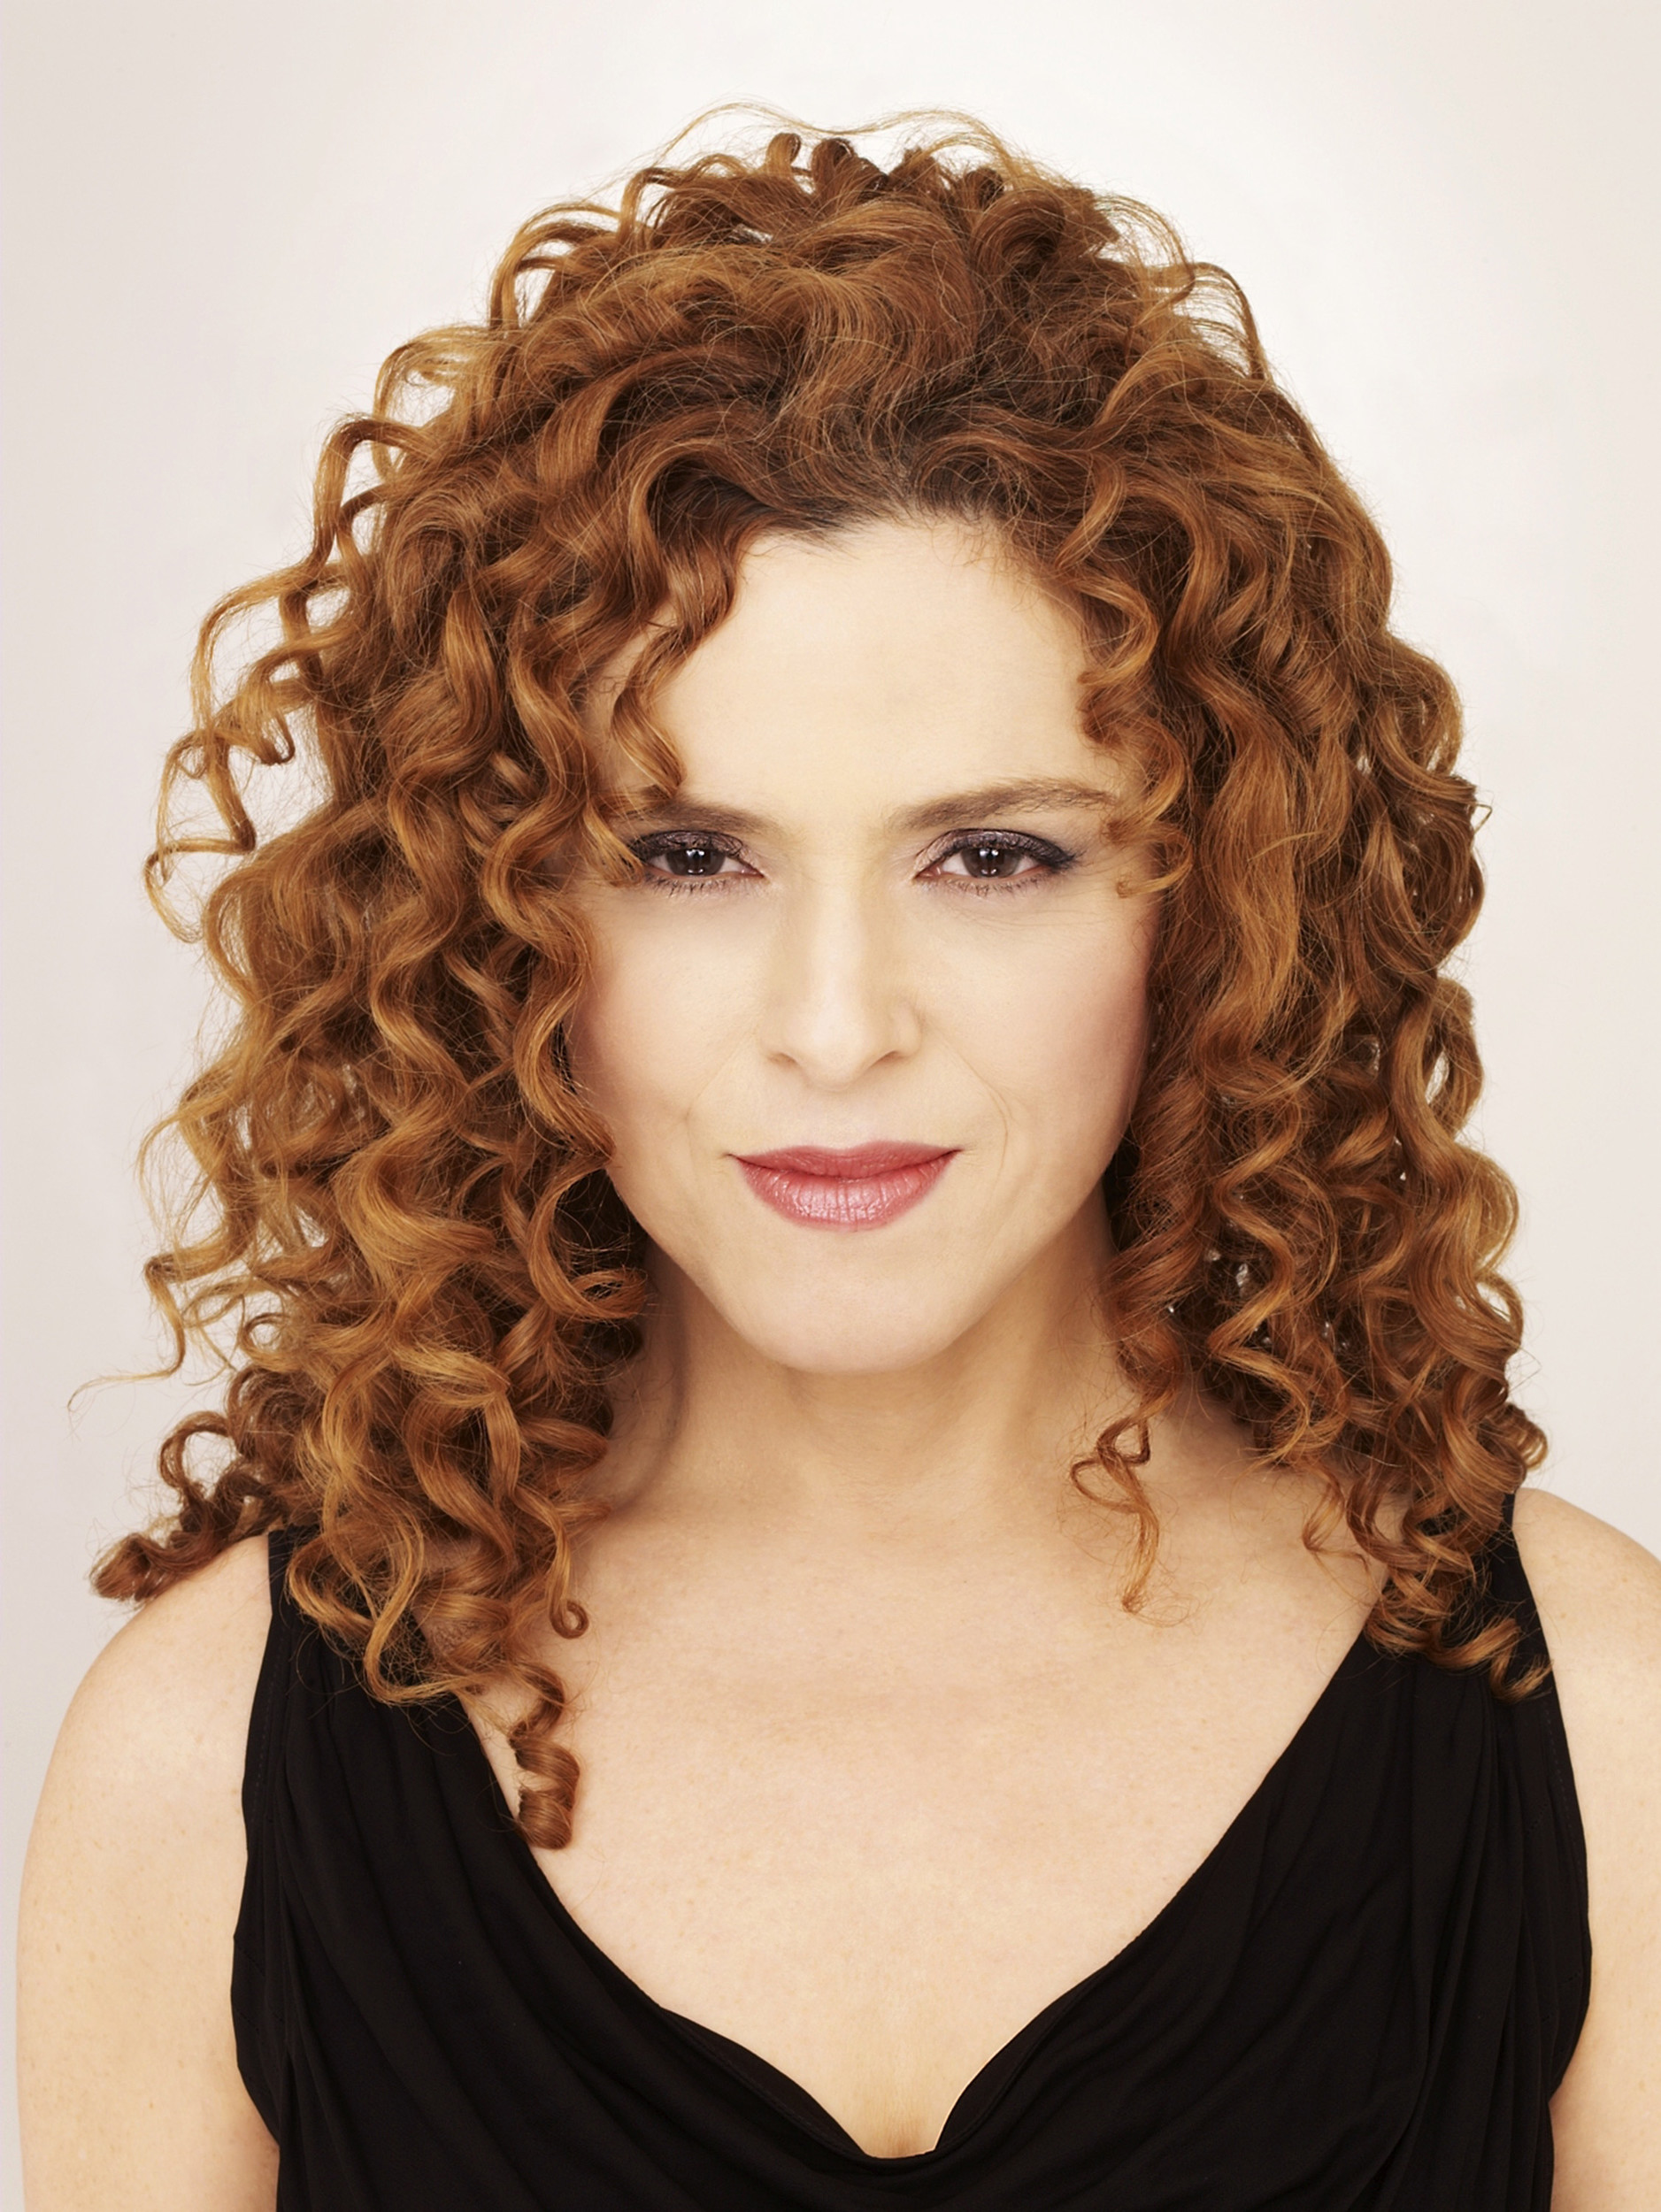 Bernadette Peters: 2006